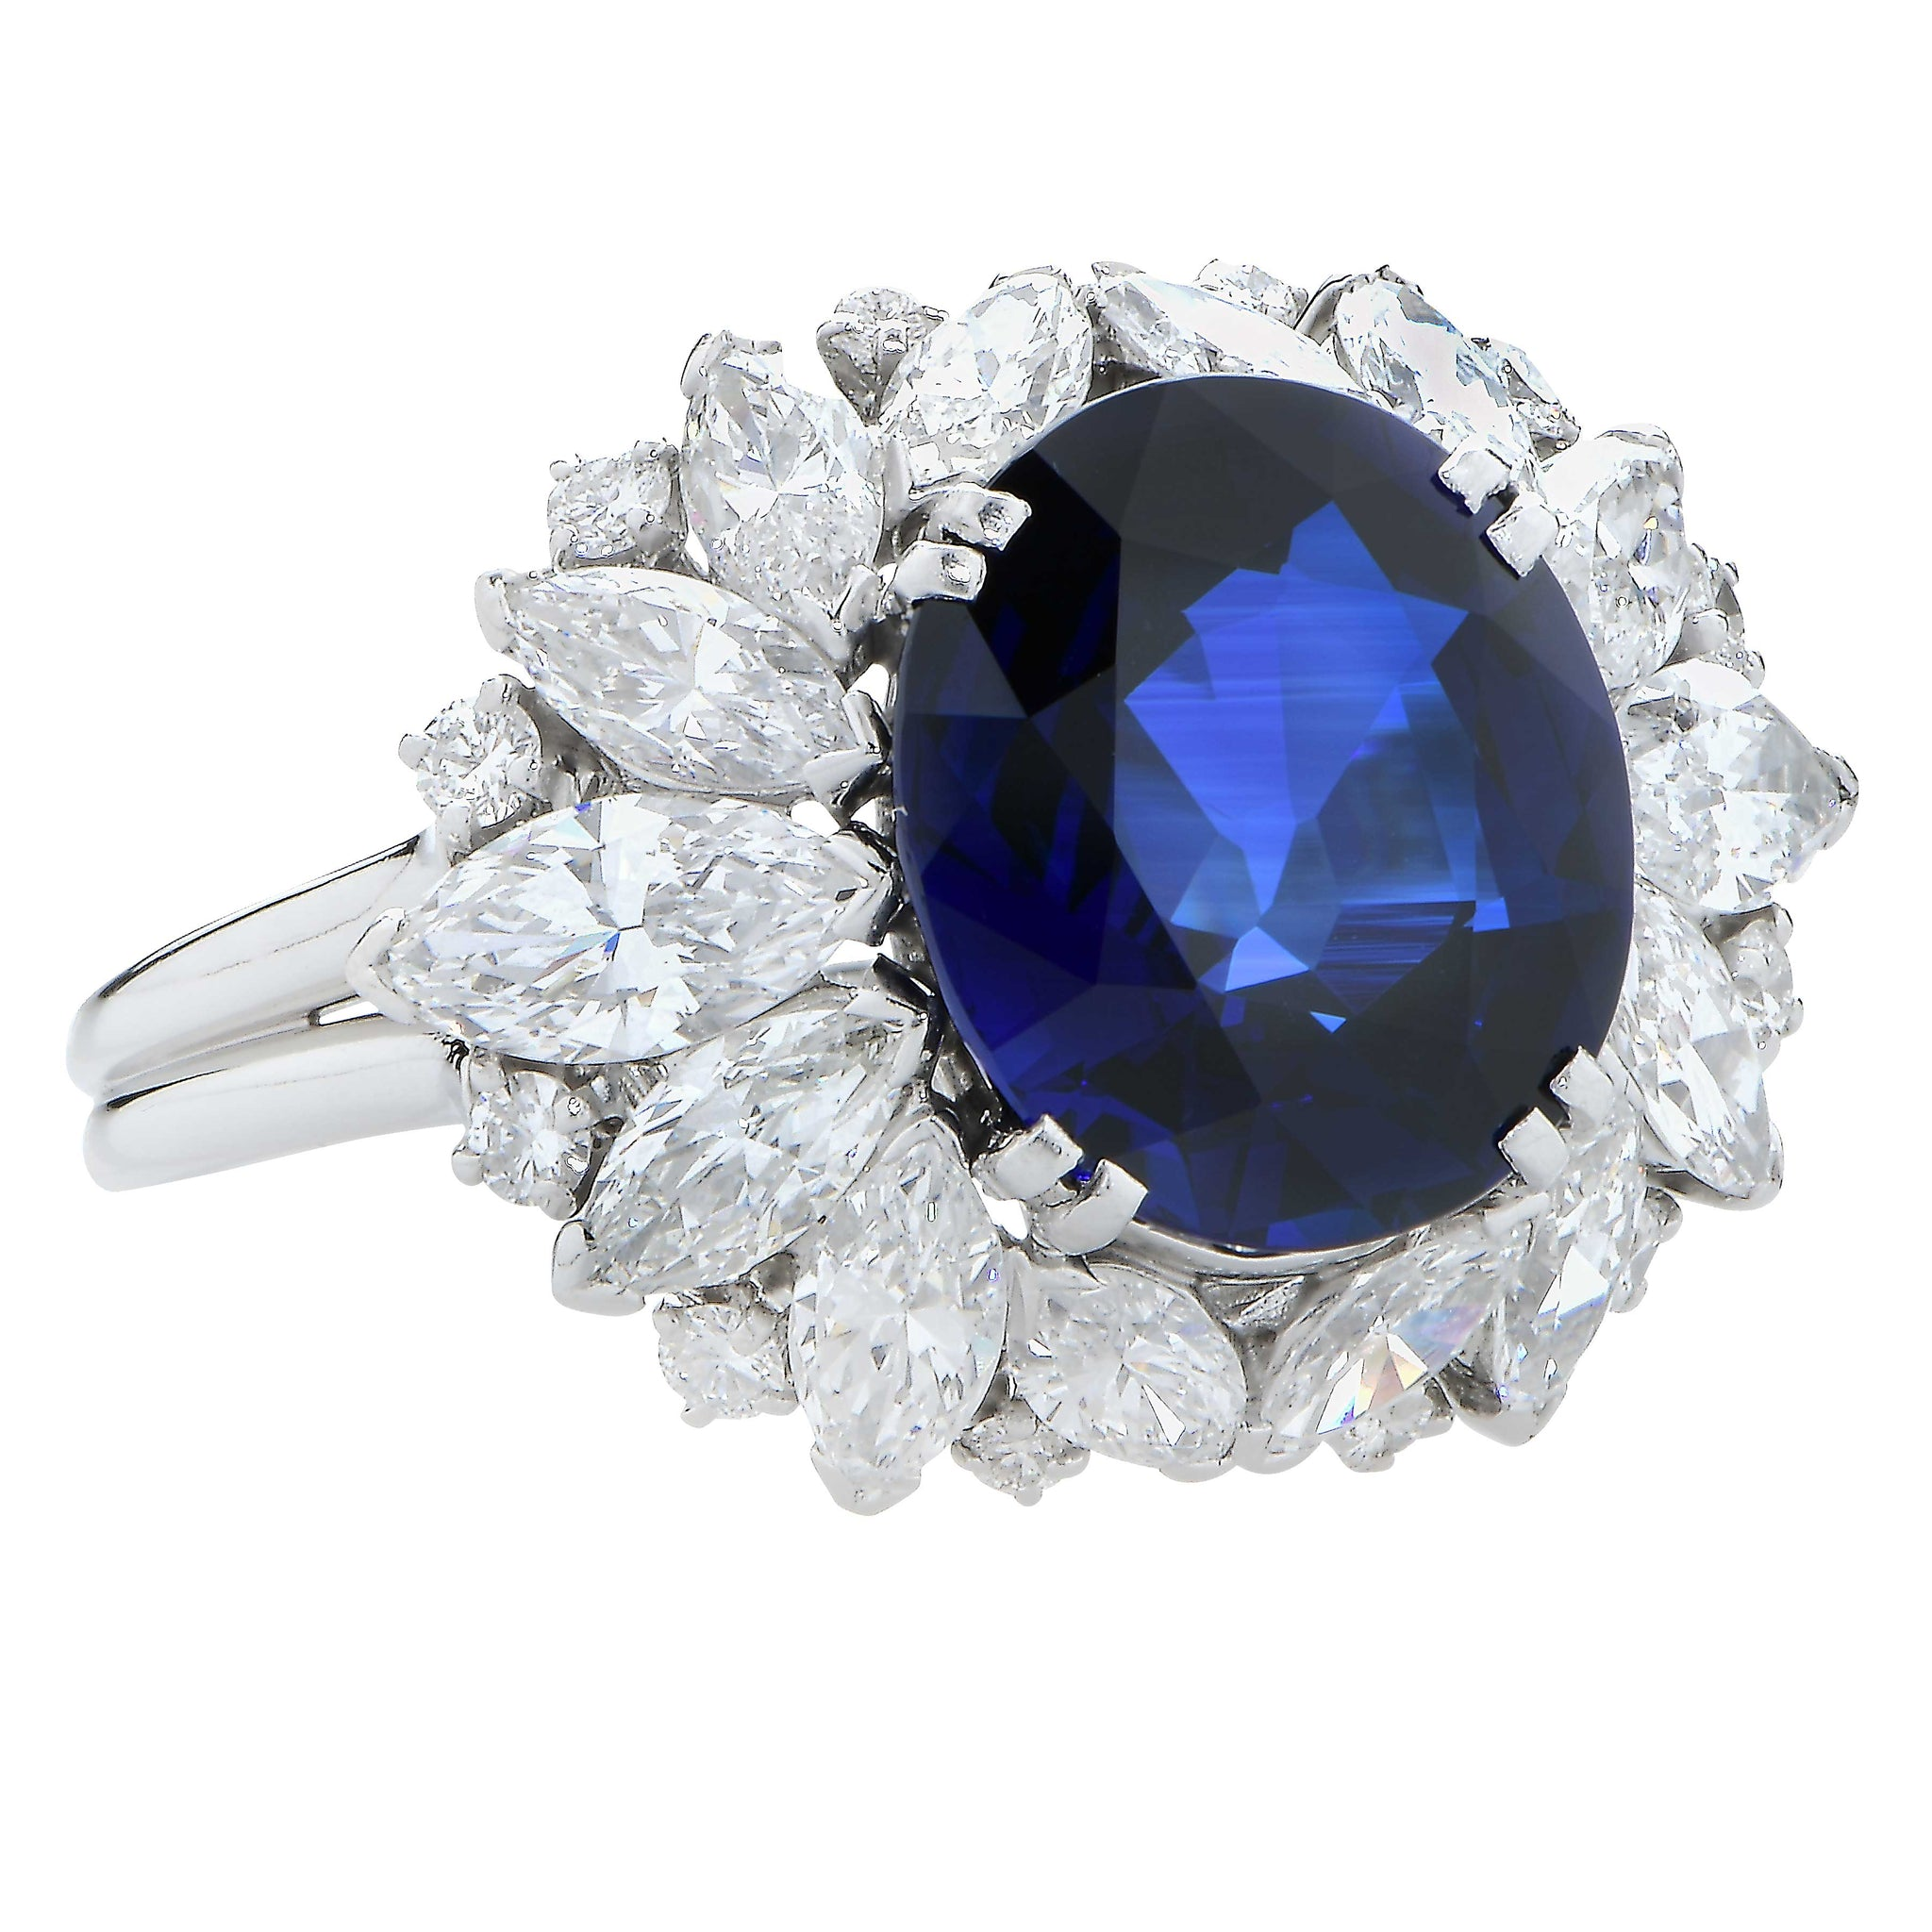 cluster ring featuring round view sapphire graff halo bomb diamond bands bombe and side dome collections of pav a diamonds